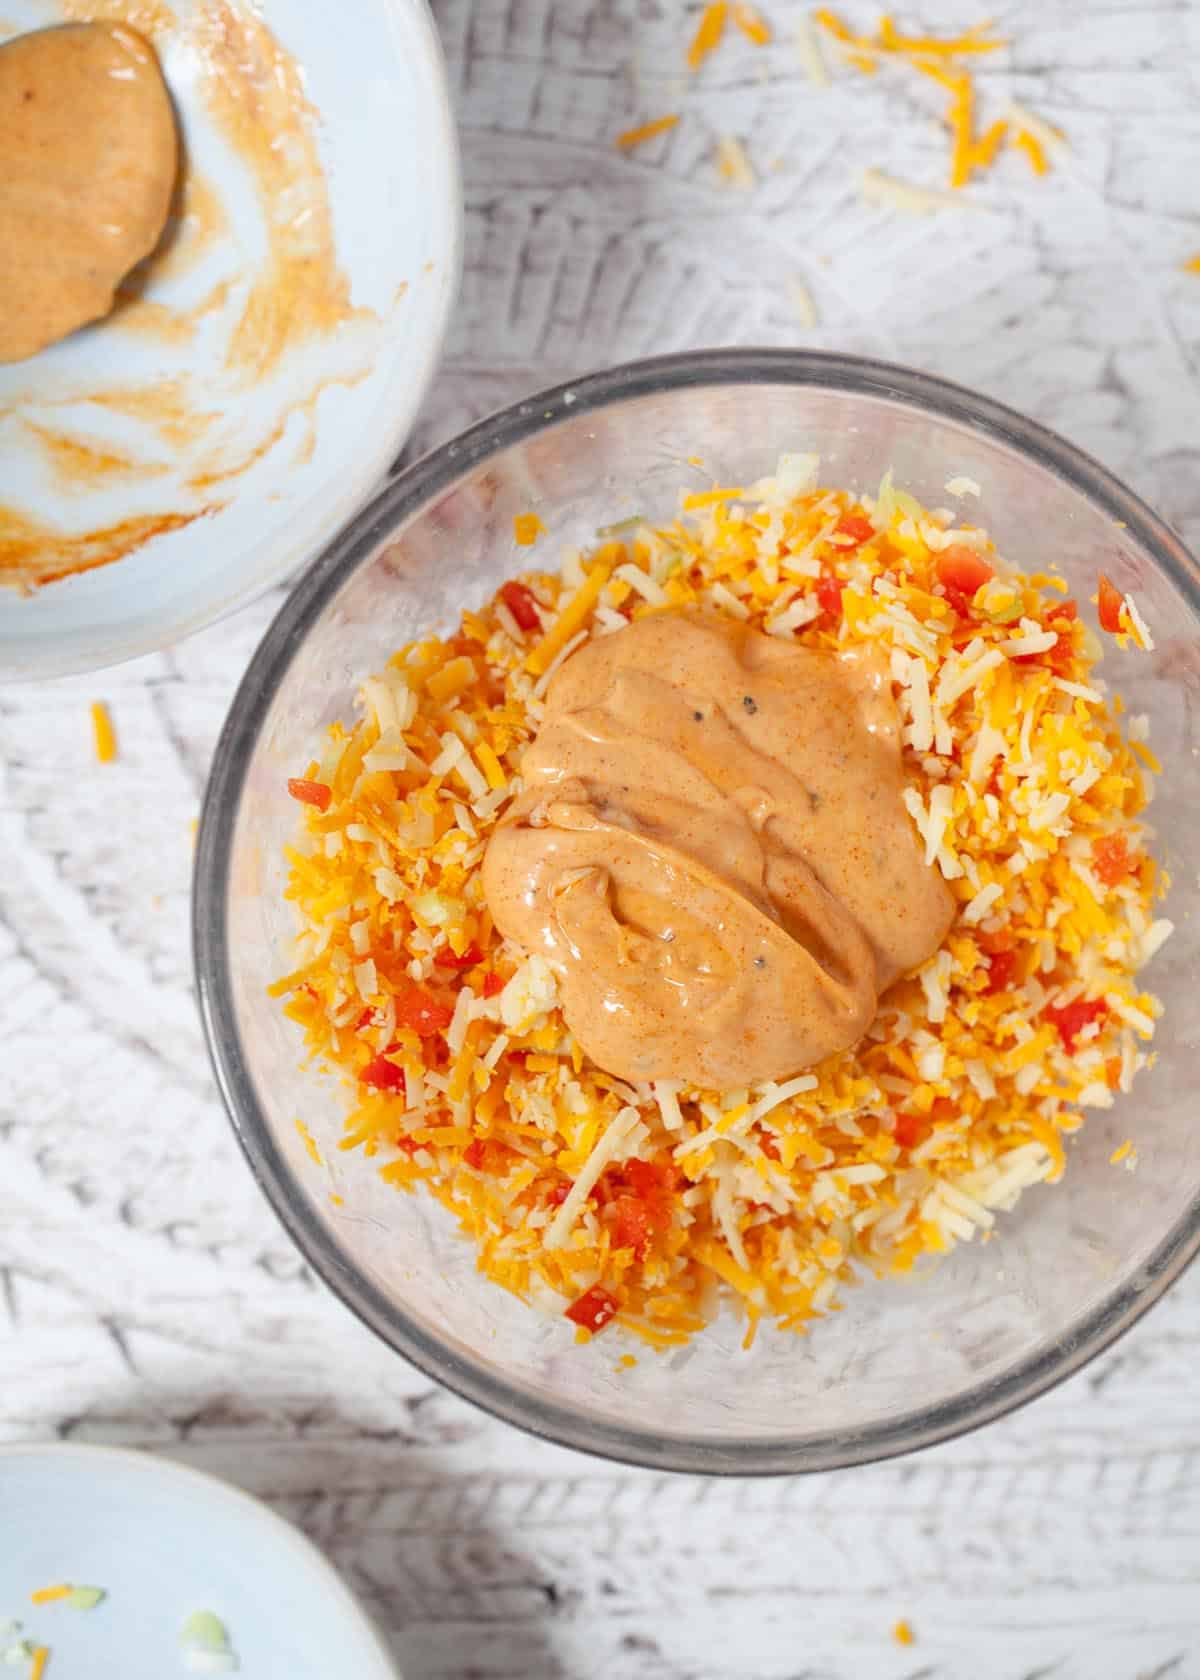 making cheese savoury sandwich filling by mixing grated cheese, red pepper, onion and paprika mayonnaise